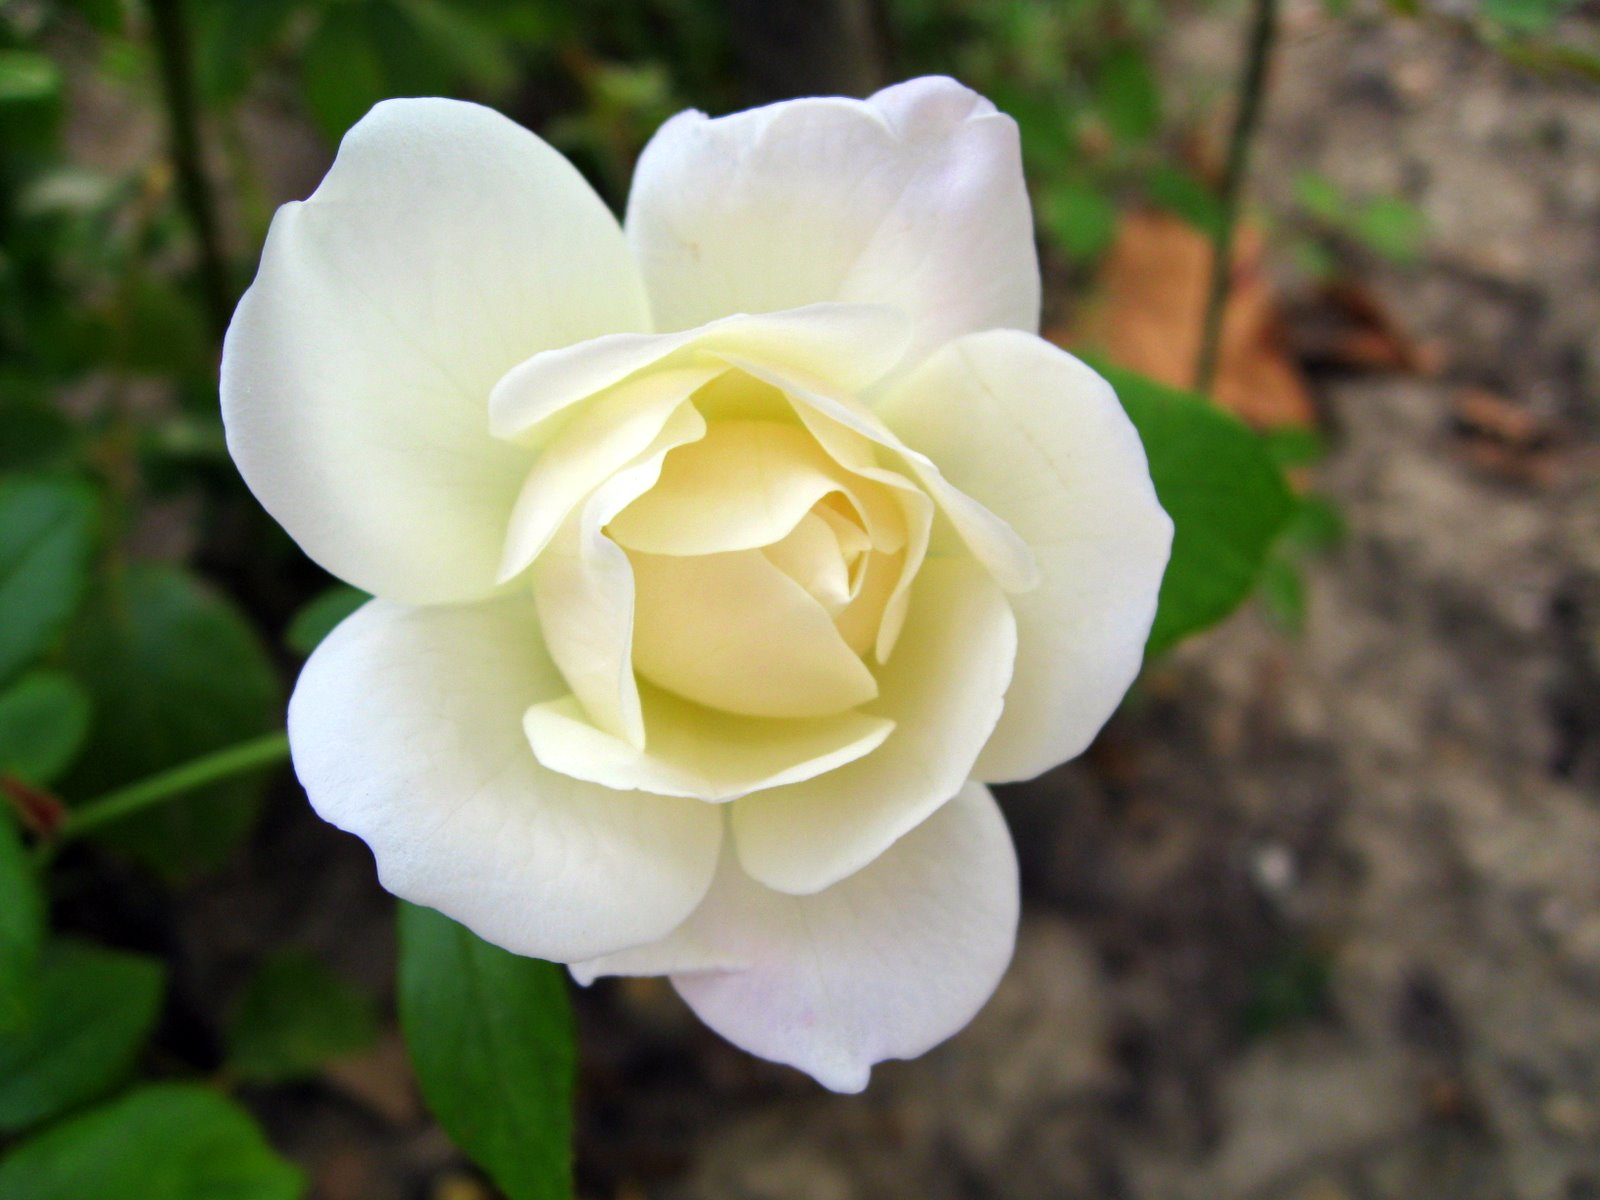 Flower photos flower photos high resolution flowers p most beautiful white rose dhlflorist Choice Image